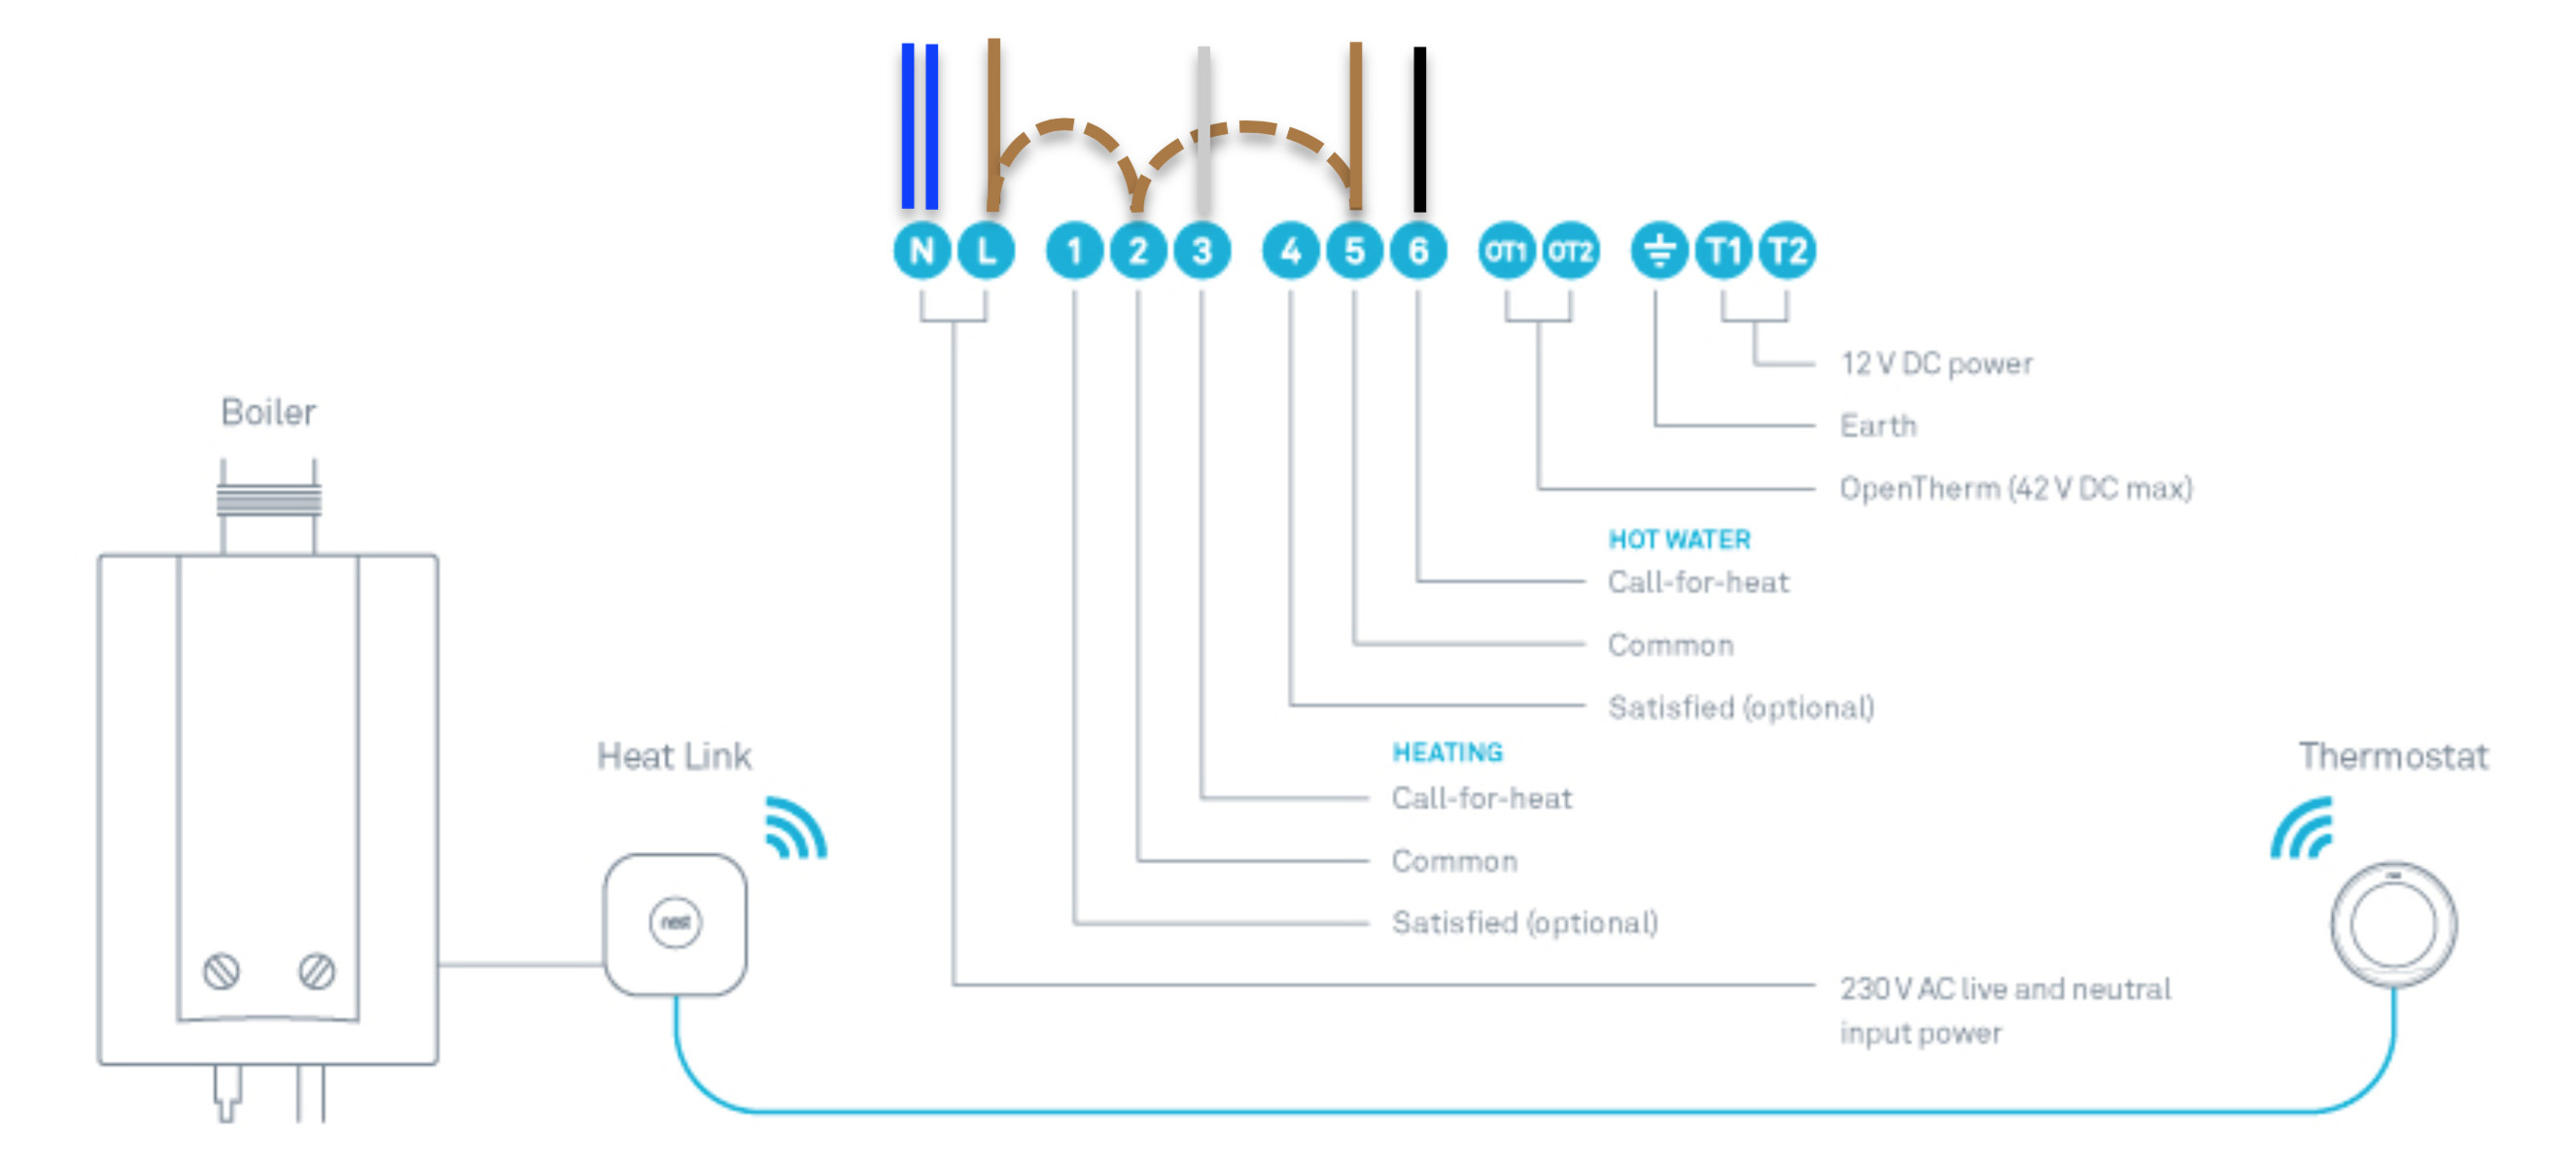 Nest Wiring Diagram Heatlink | Wiring Diagram - Wiring Diagram Nest Thermostat Heat Pump